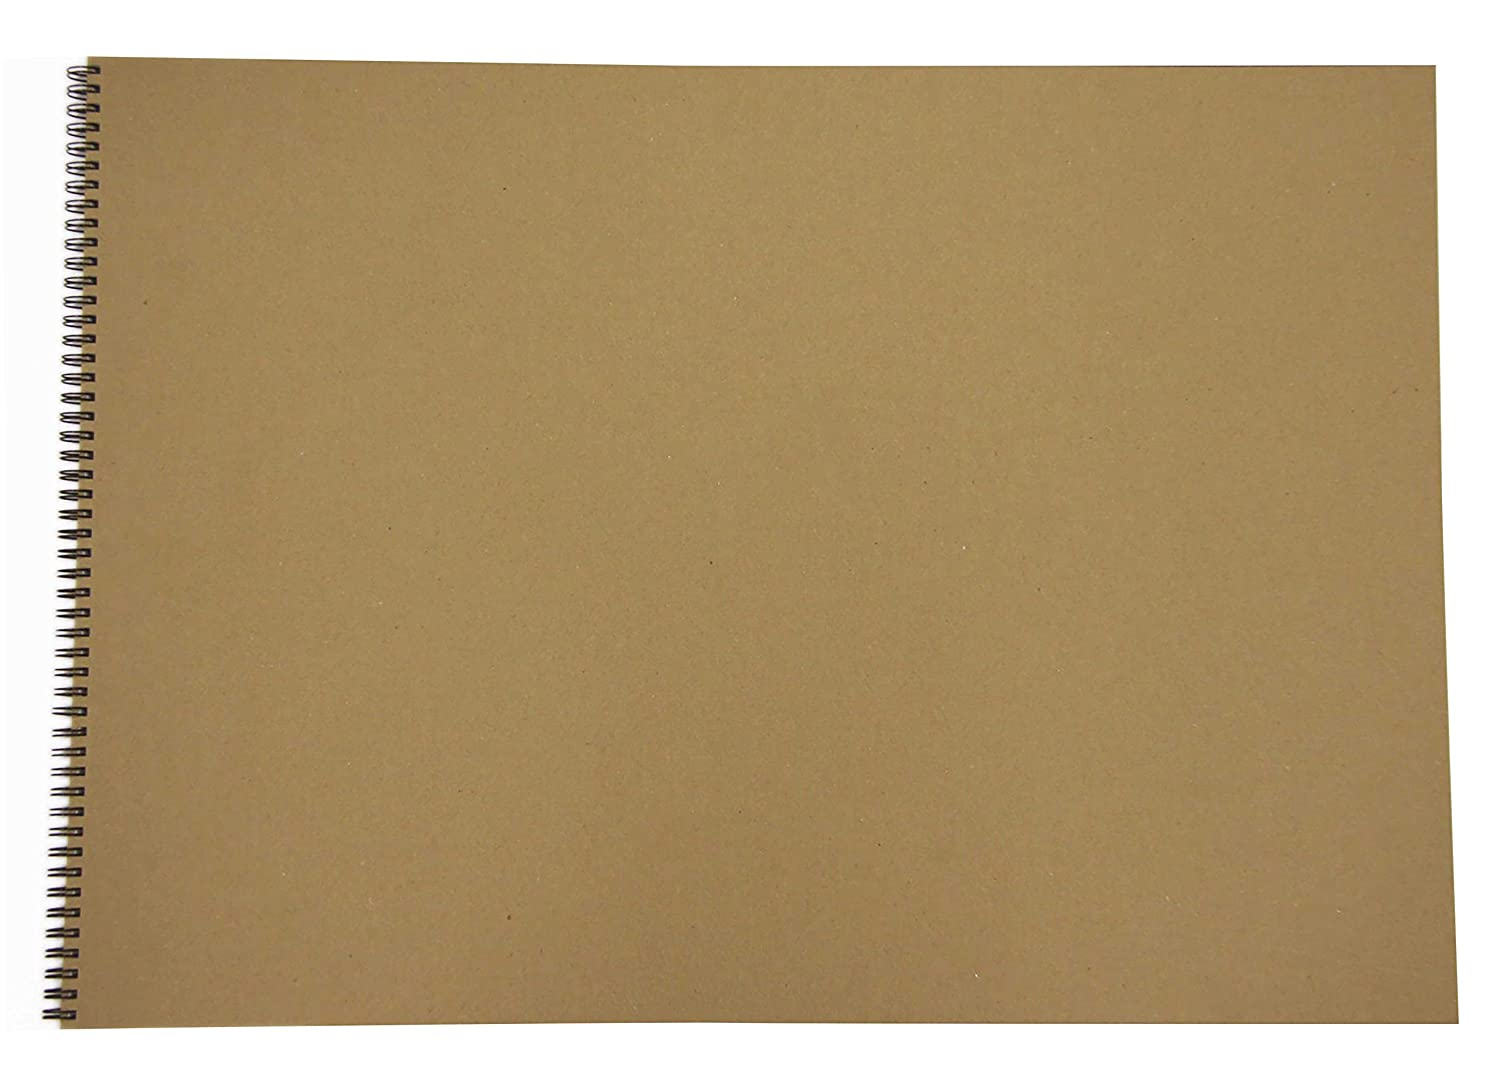 A2 recycled sketch book, 40 sheets (80 sides) of 170gsm recycled cartridge paper, hard covers